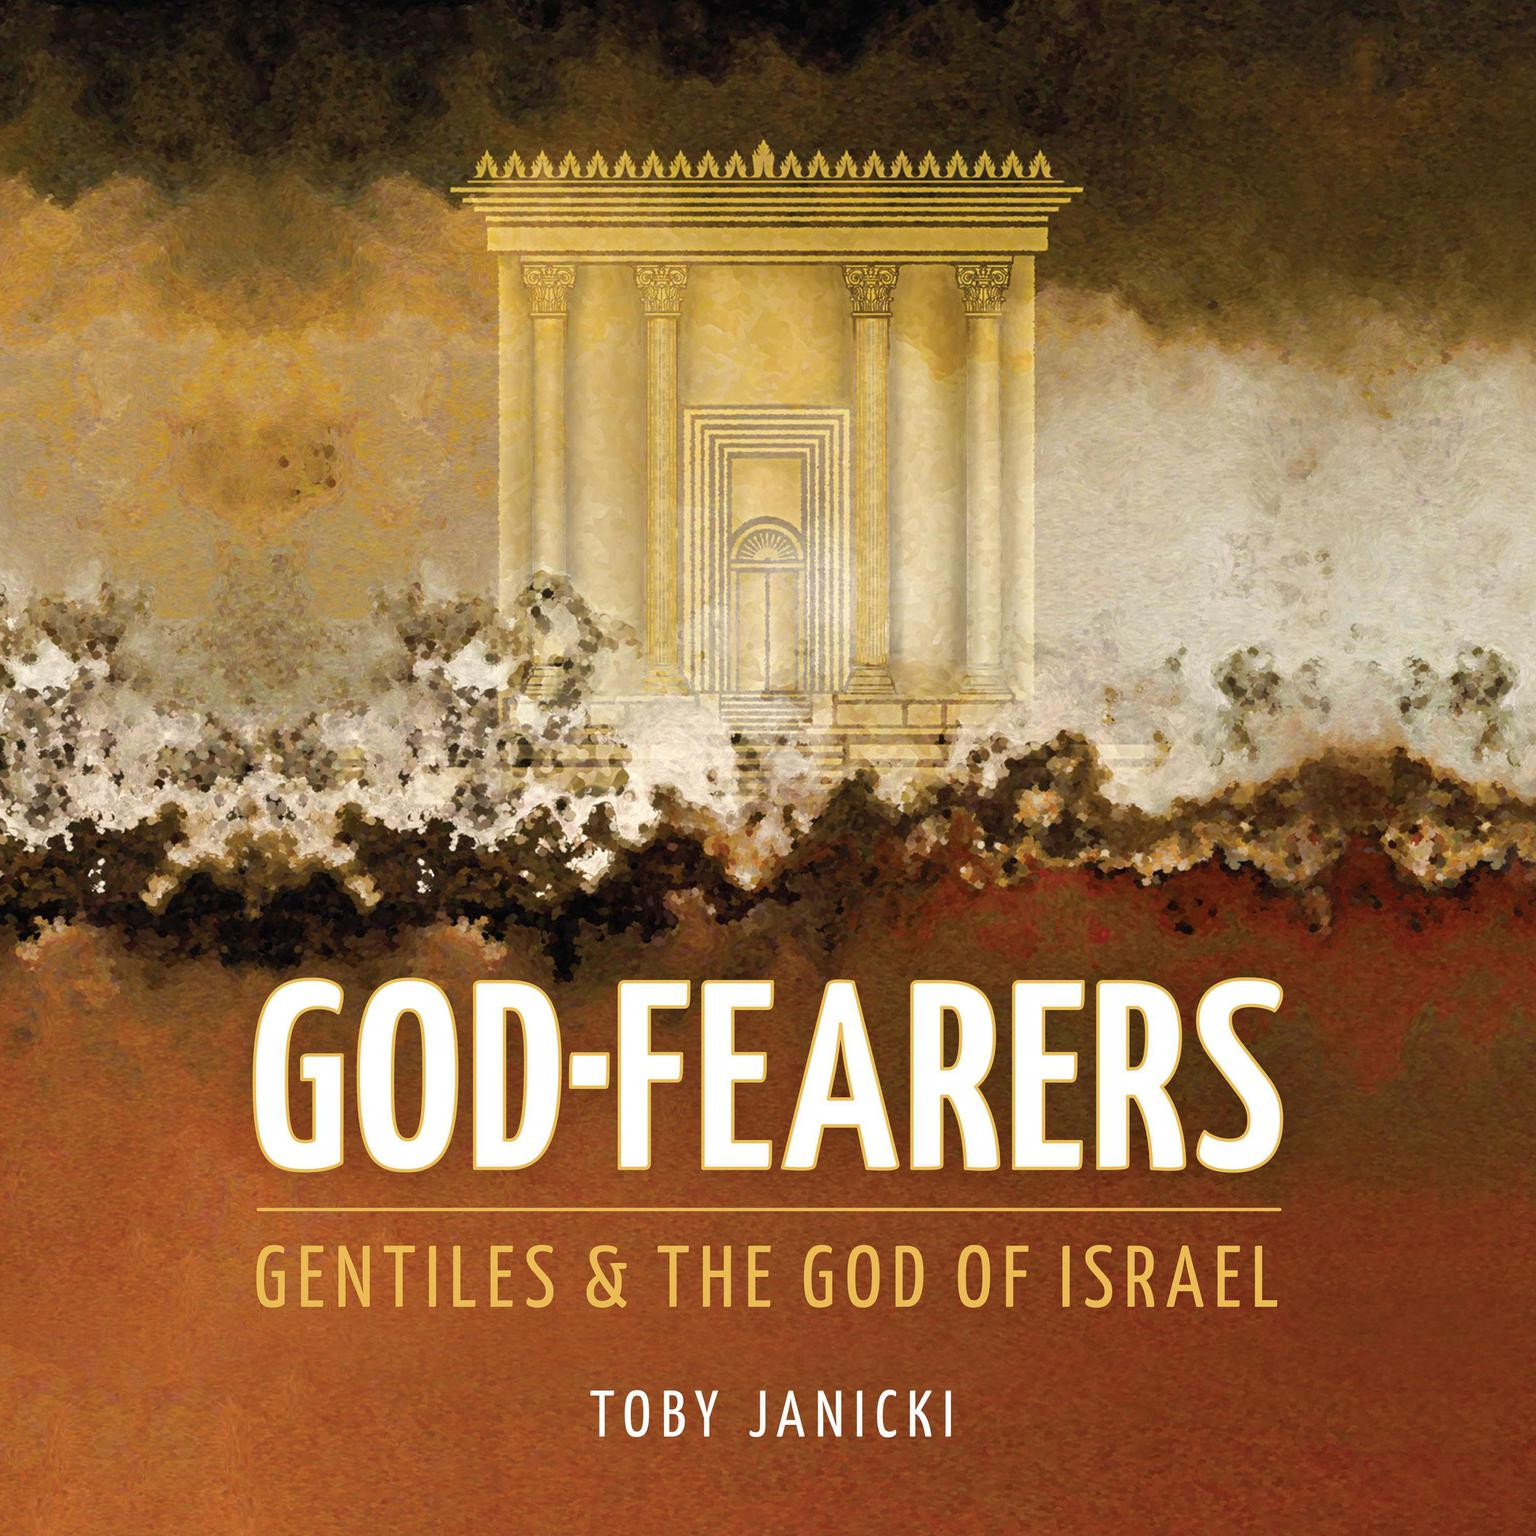 Printable God Fearers: Gentiles & the God of Israel Audiobook Cover Art